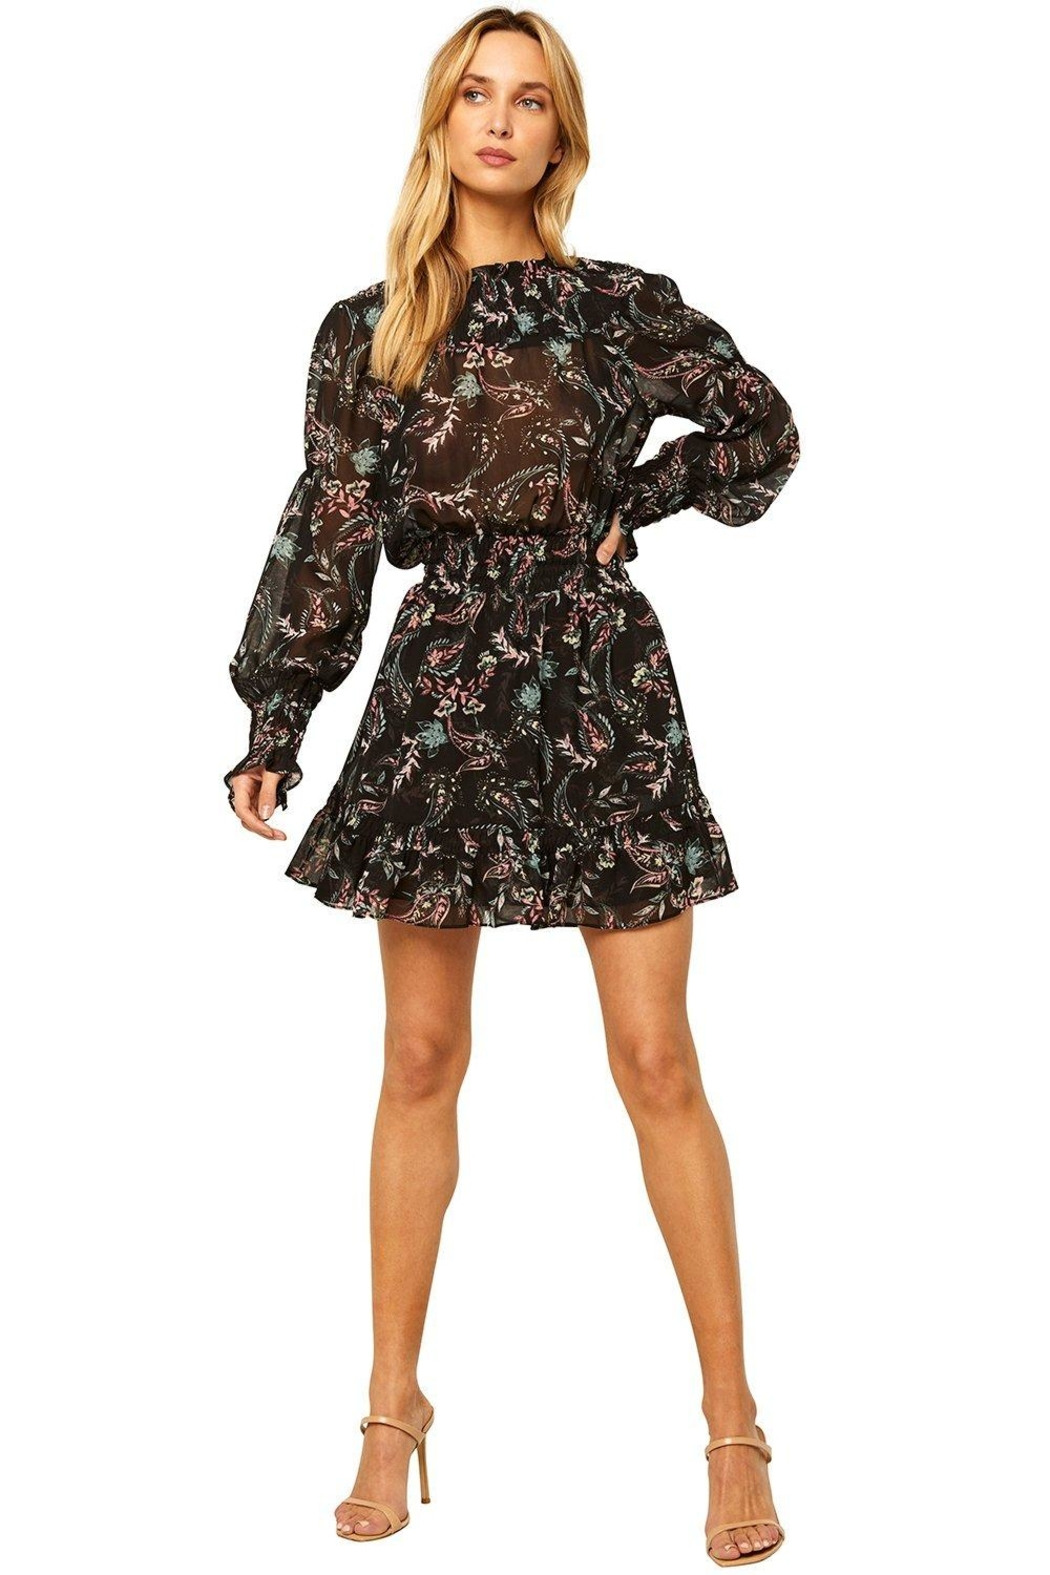 Misa Los Angeles Marin Dress In Enchanted Paisley - Side Cropped Image